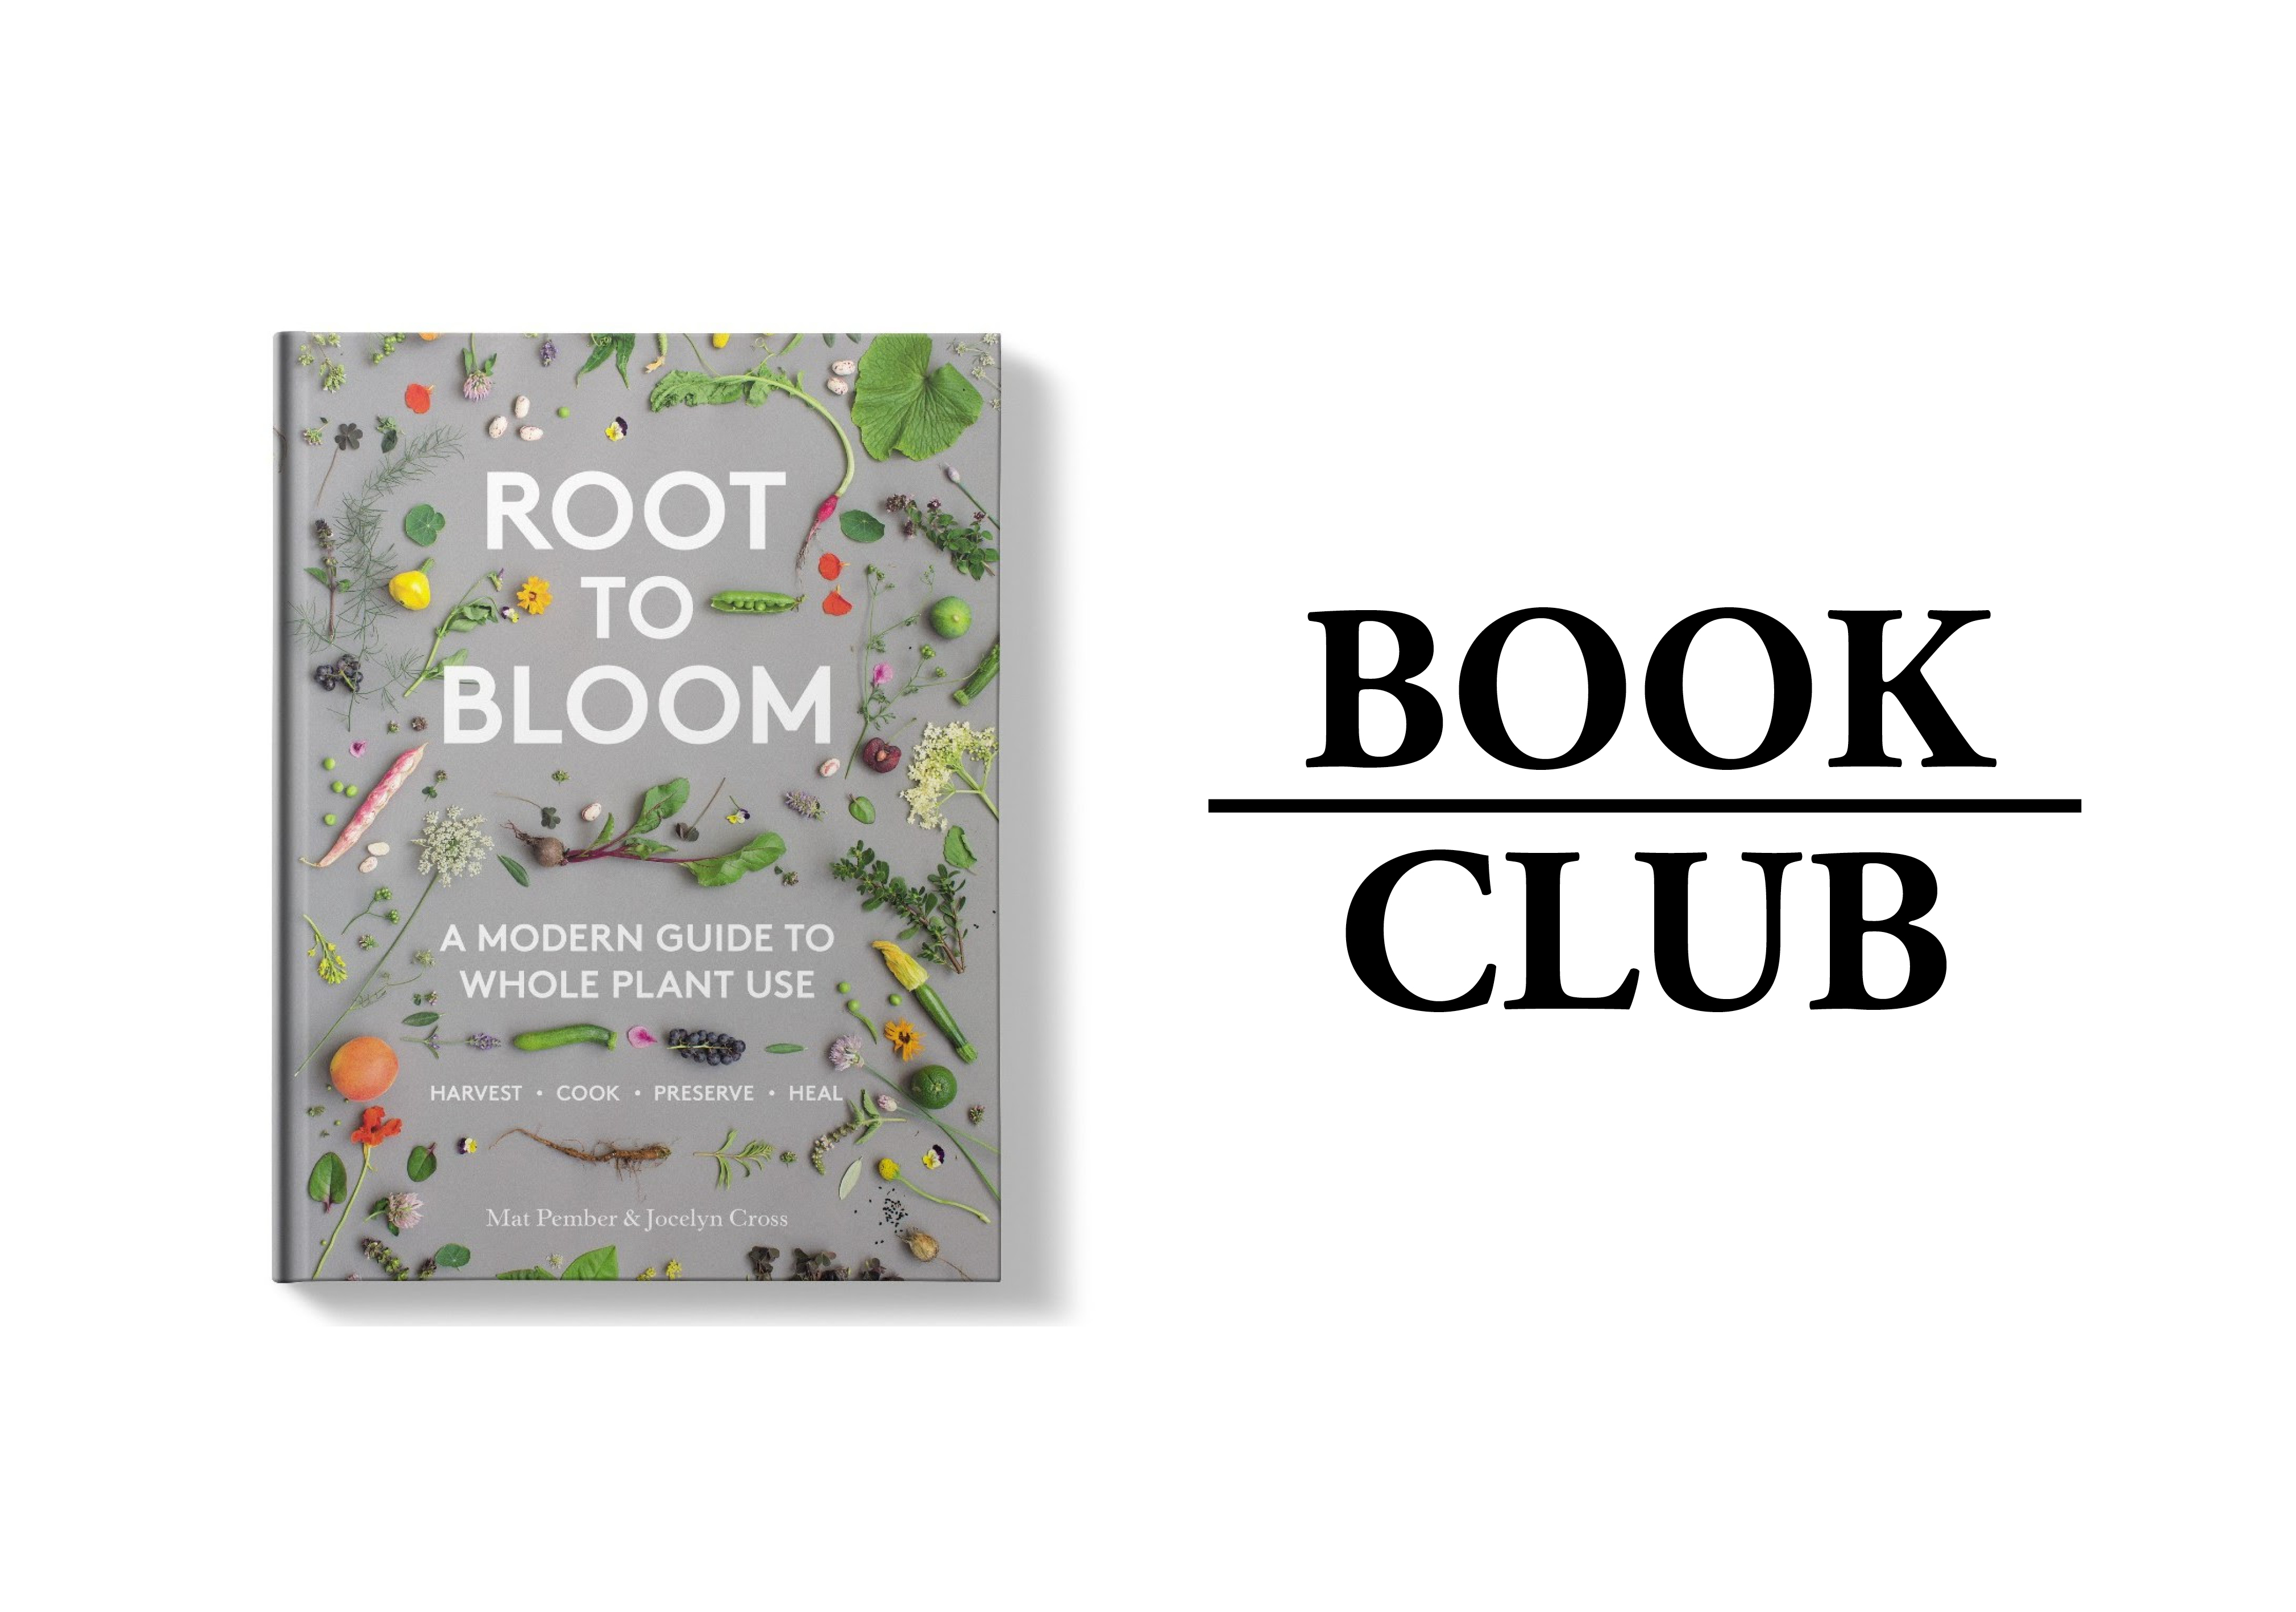 Root to Bloom by Mat Pember and Jocelyn Cross